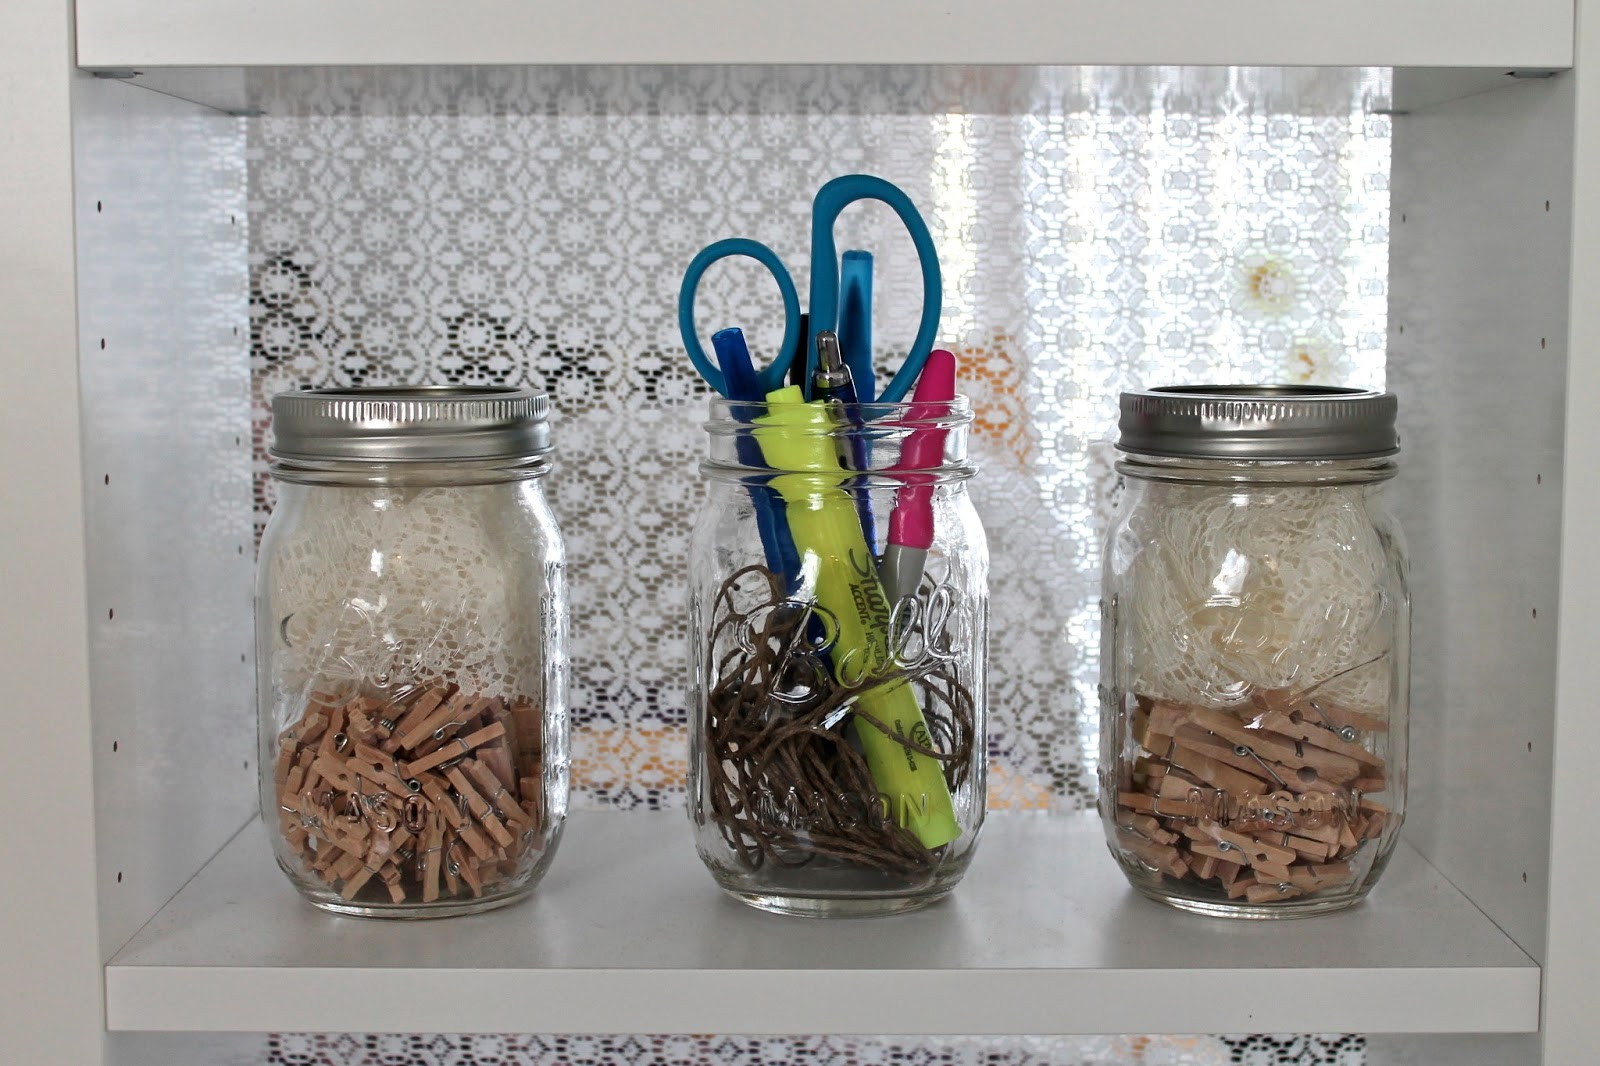 diy-mason-jar-craft-for-desk/office-organization